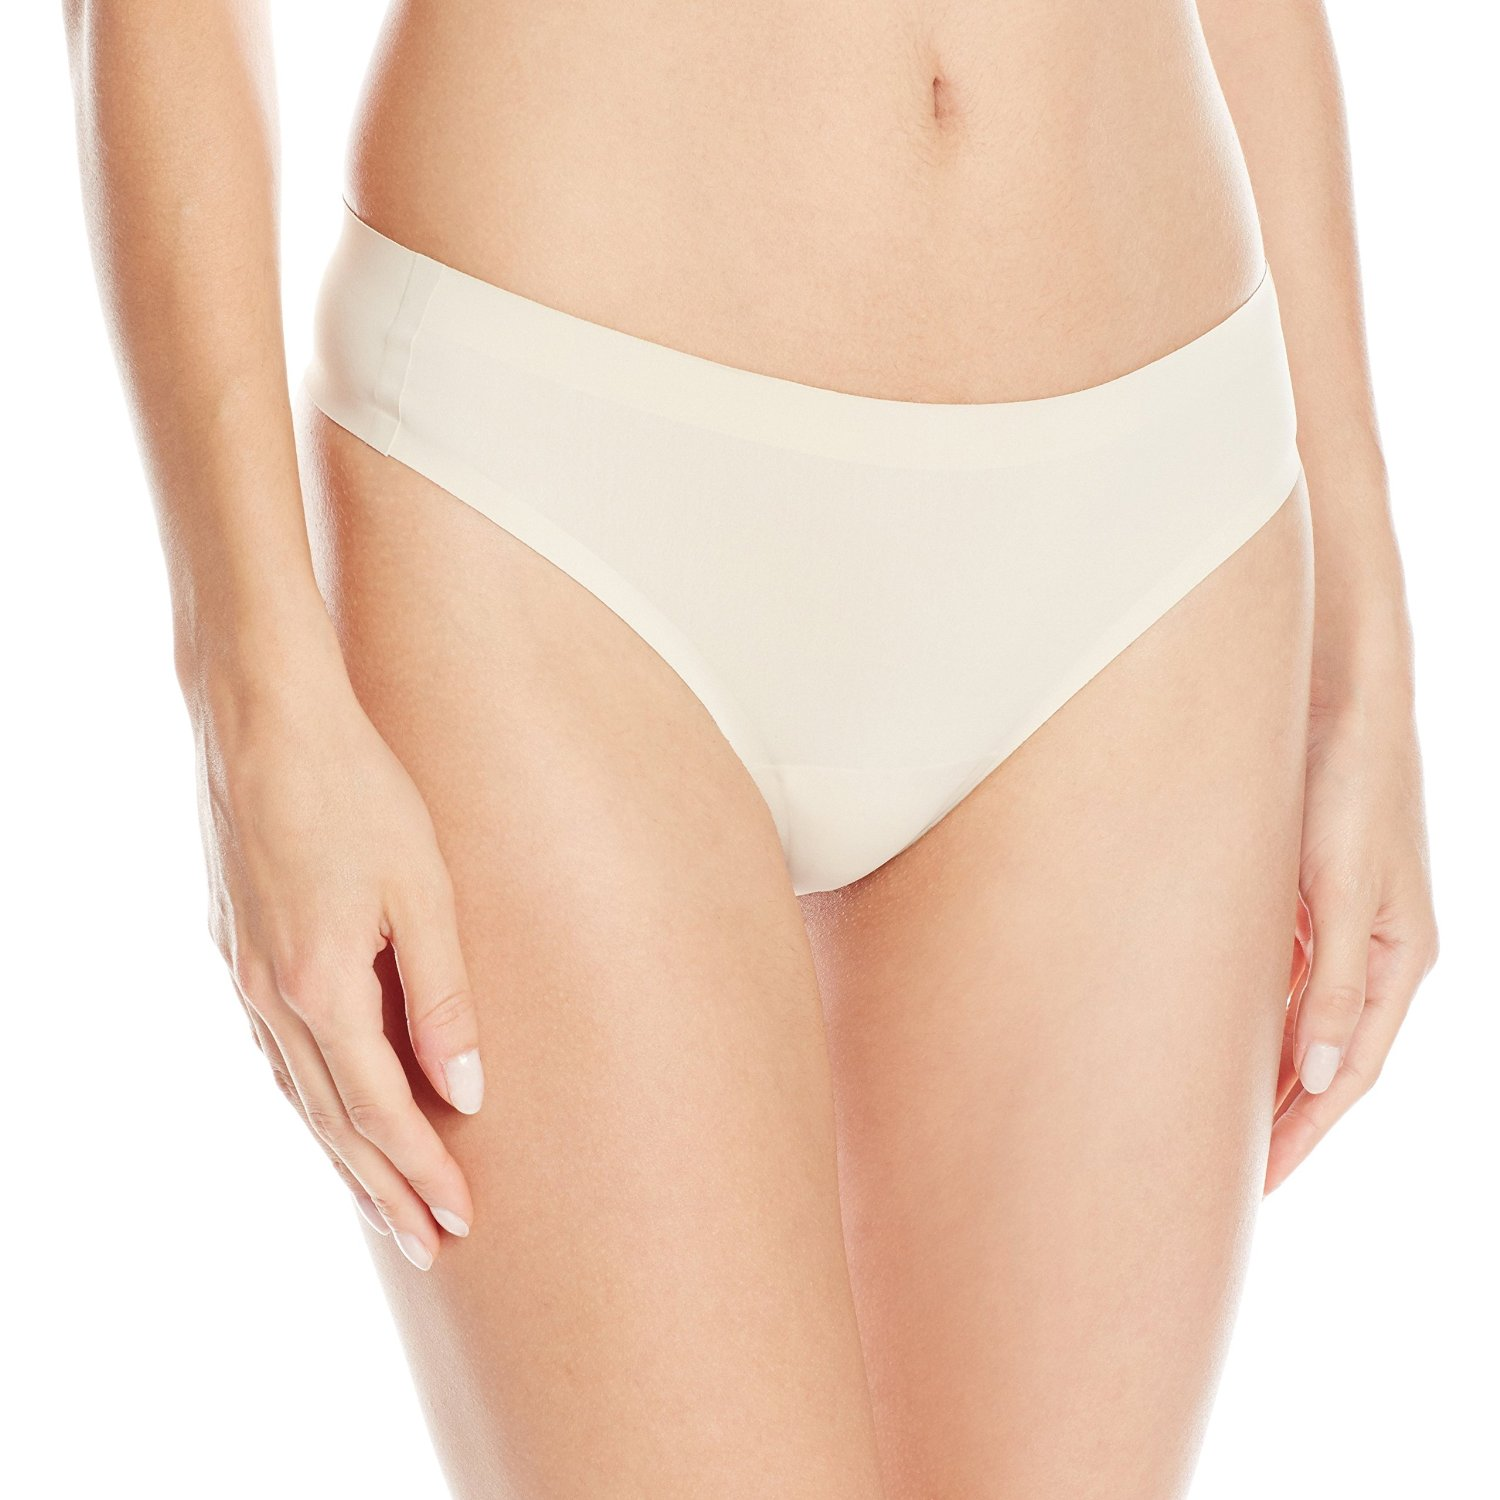 e9a0f814723b Get Quotations · Knix Wear Women's Fitknix Air Athletic Moisture Wicking  Thong